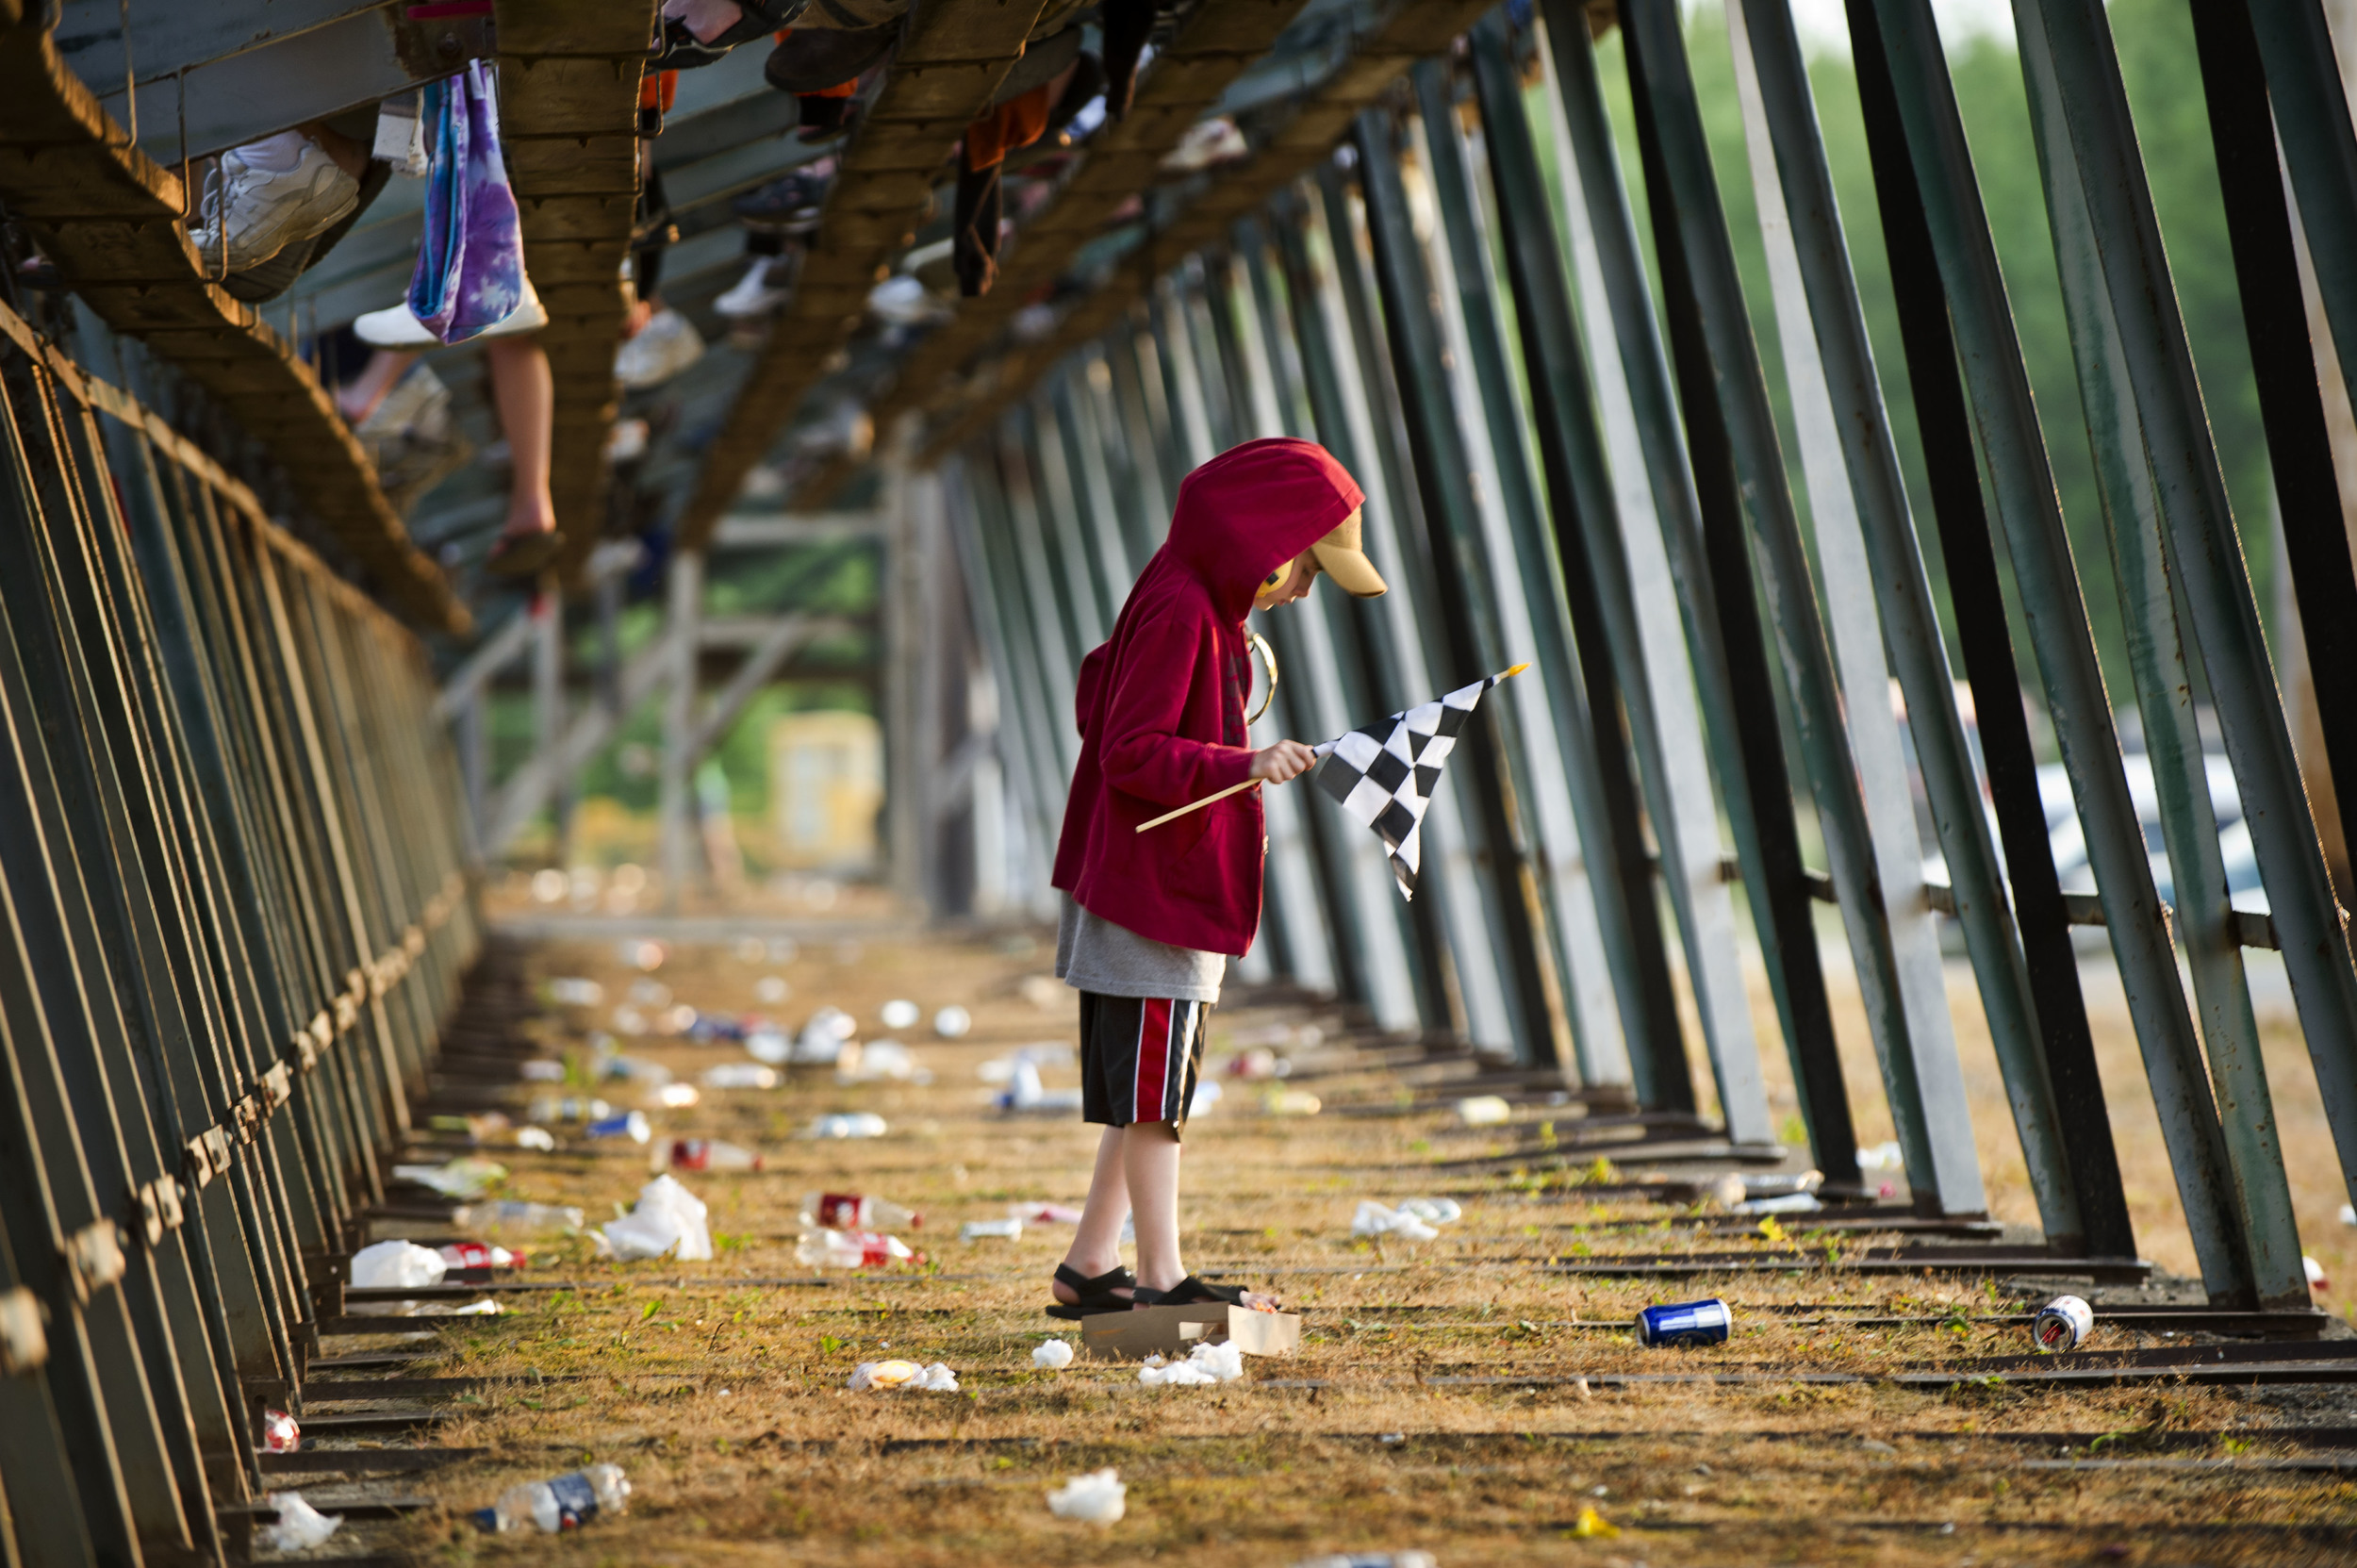 Ayden Haddad navigates through the garbage accumulated underneath the bleachers at Canandaigua Motorsports Park in Canandaigua, New York.